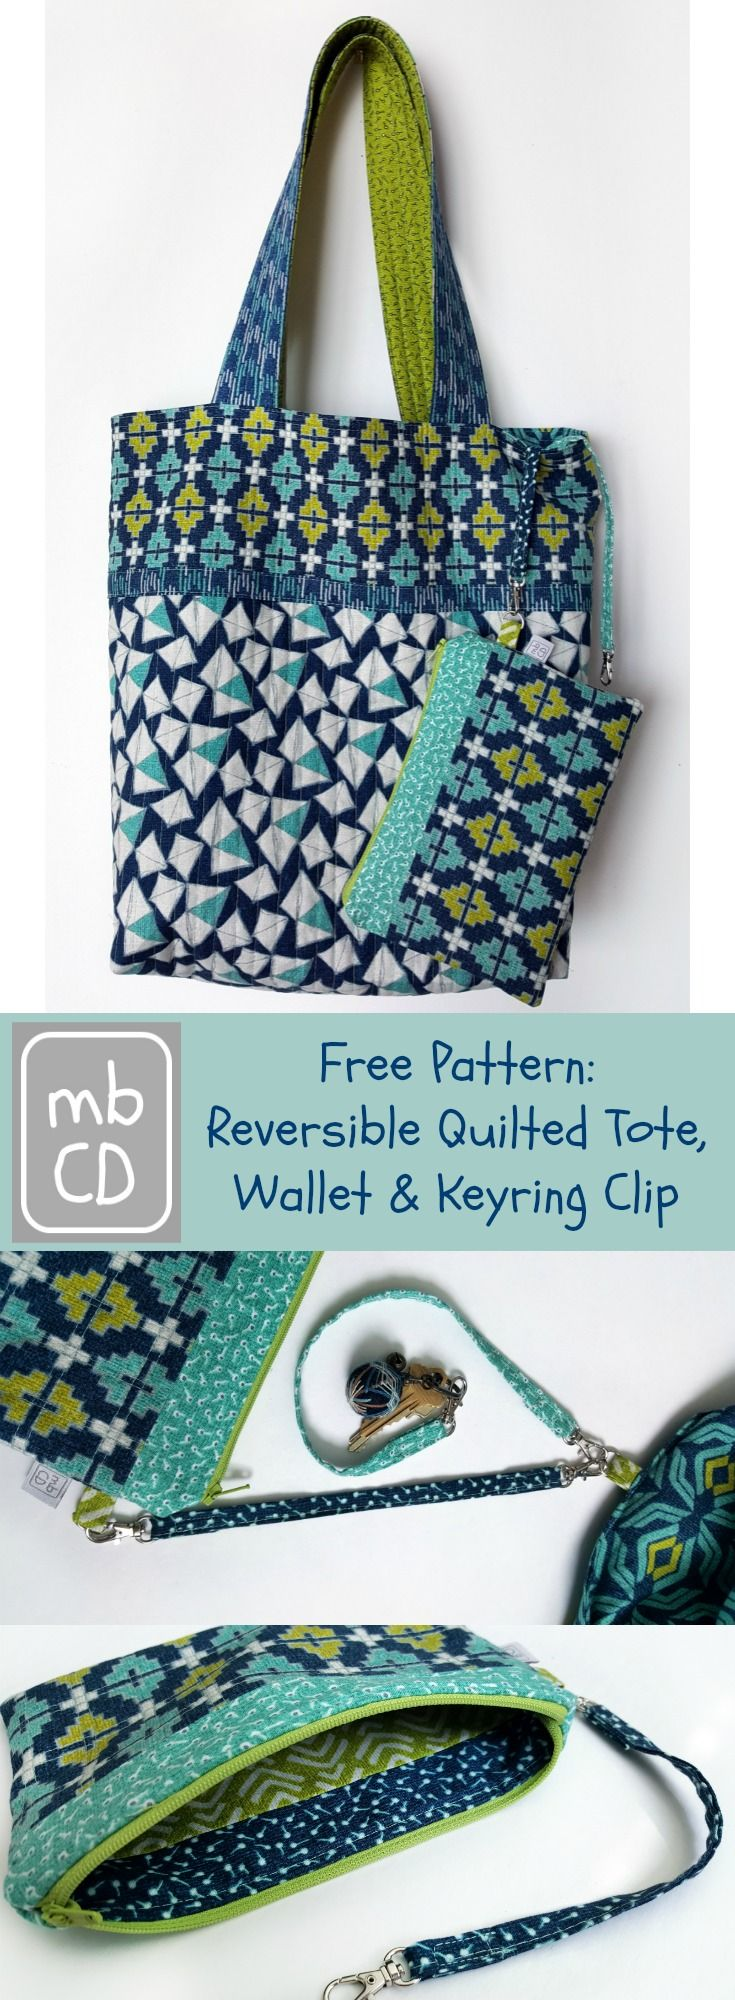 Free Patterns For Quilted Bags And Purses : Best 25+ Quilted tote bags ideas on Pinterest Diy bags tutorial, Tote bags and DIY quilted bags